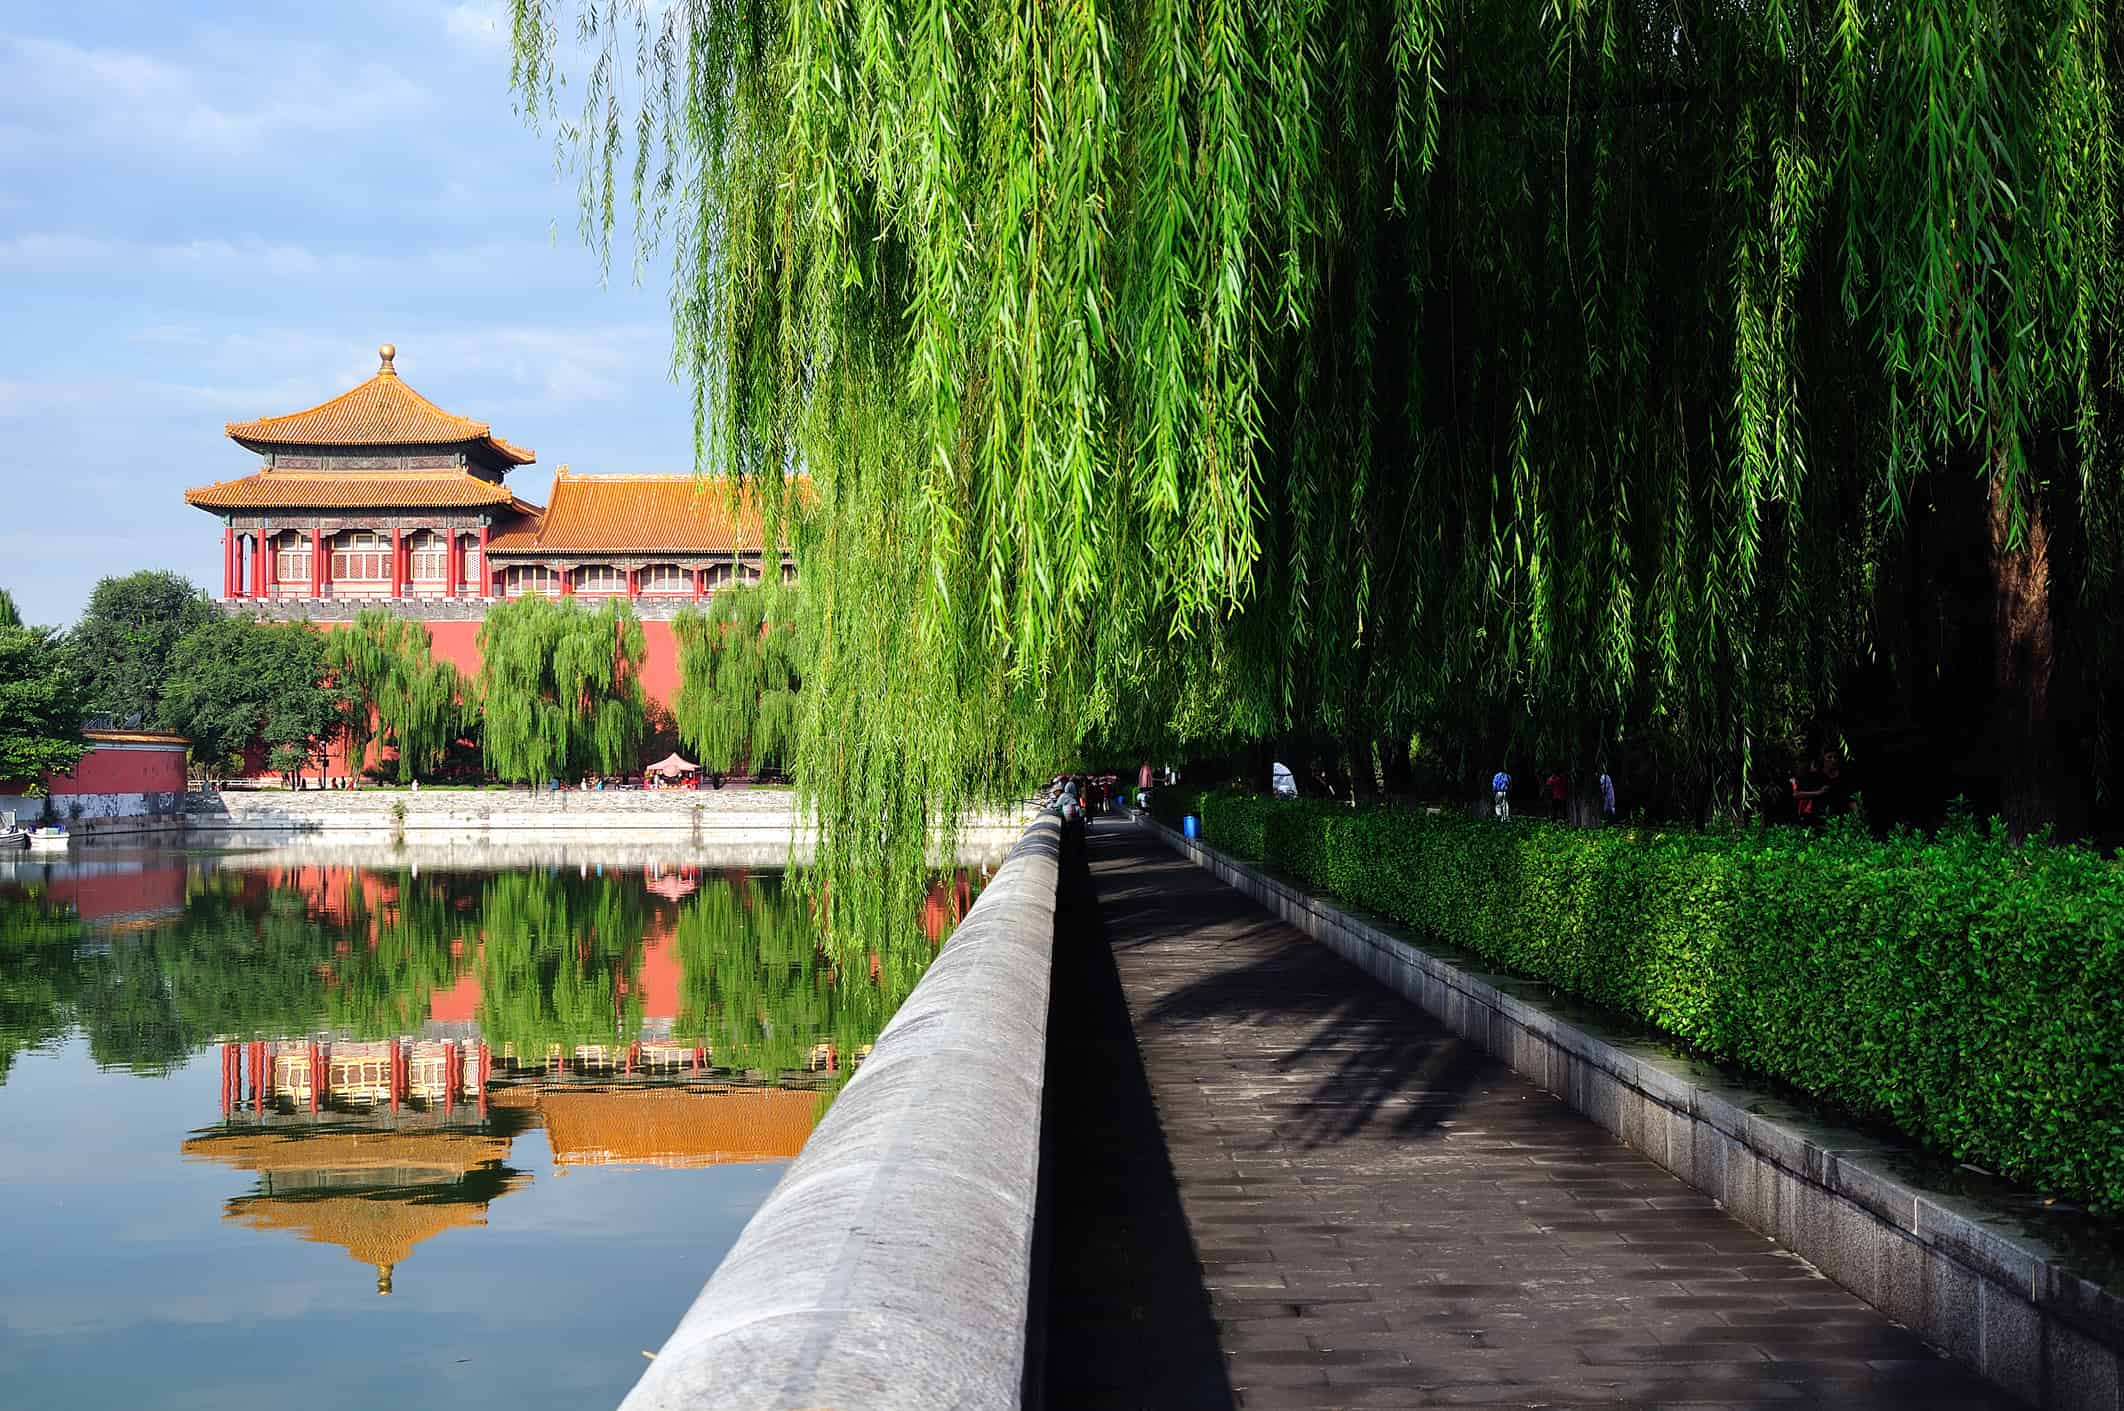 Planting in the Forbidden City.